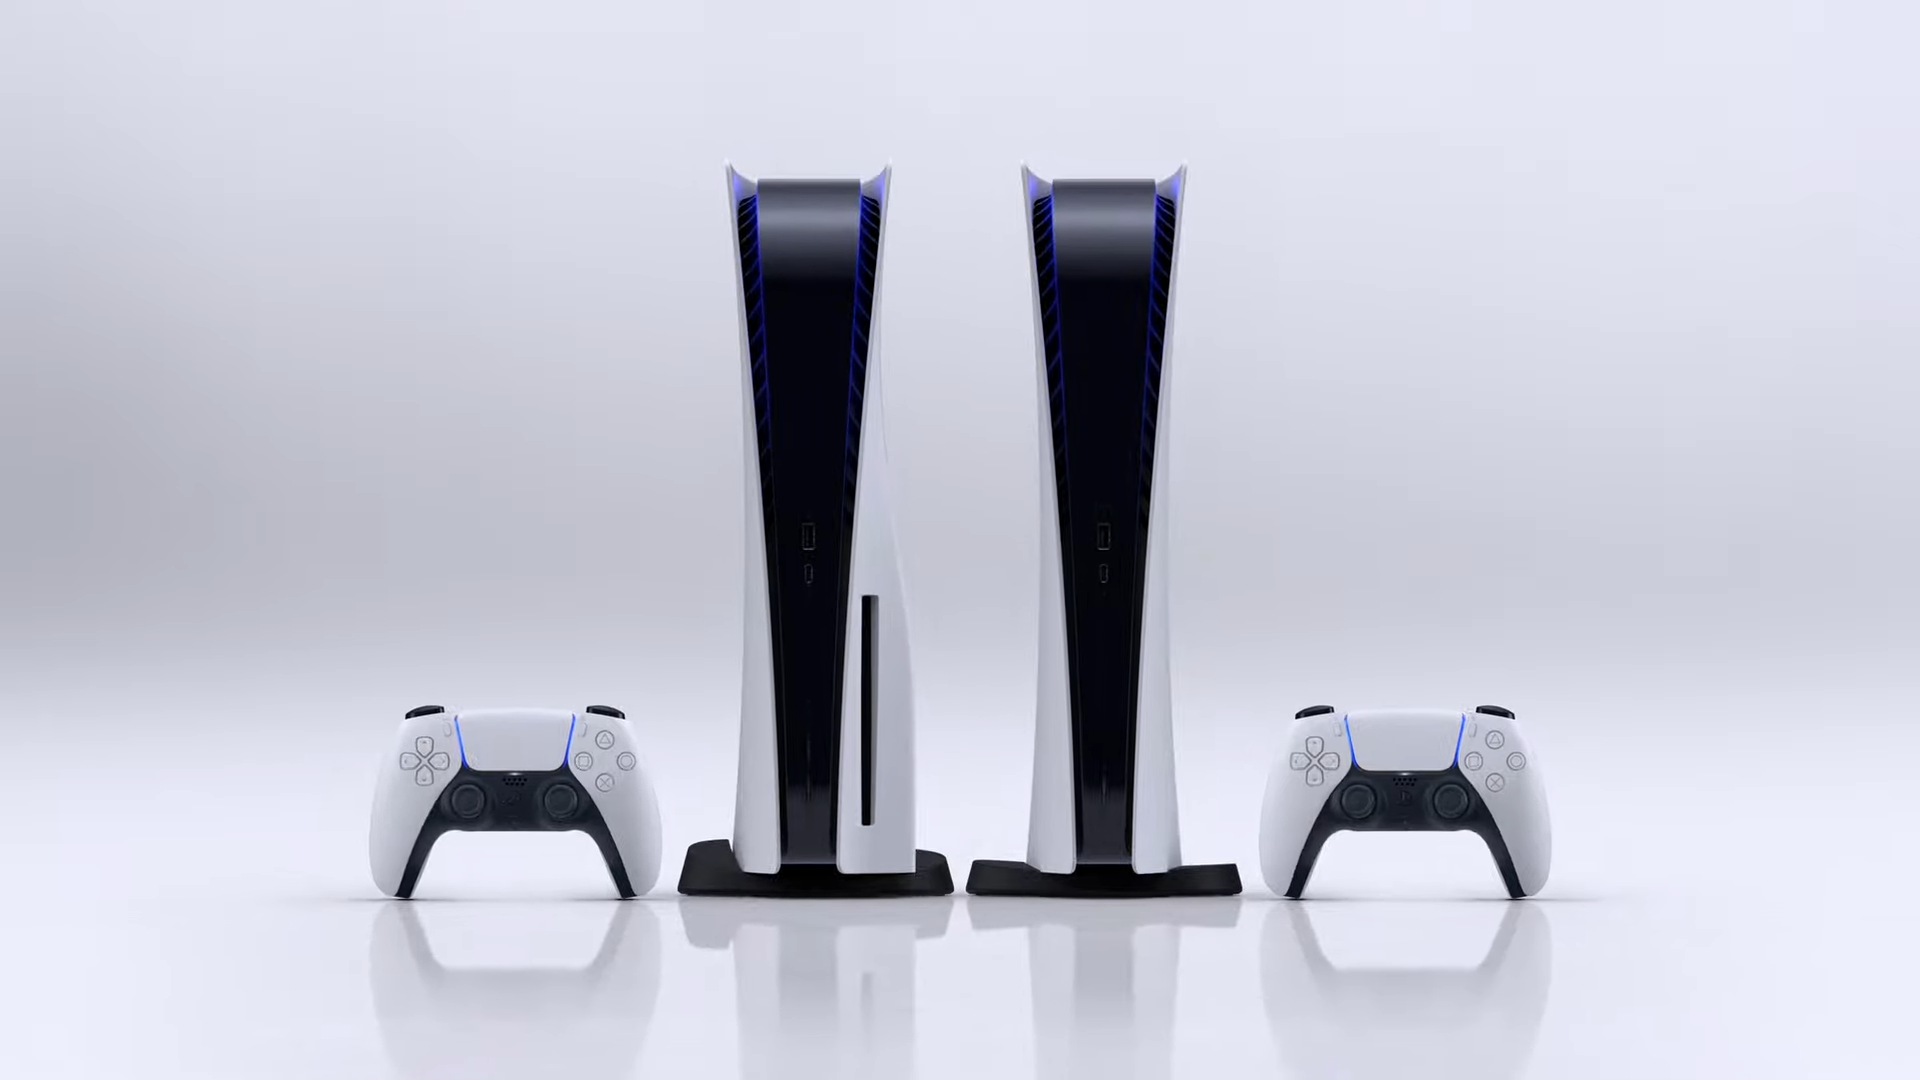 playstation5 consoles